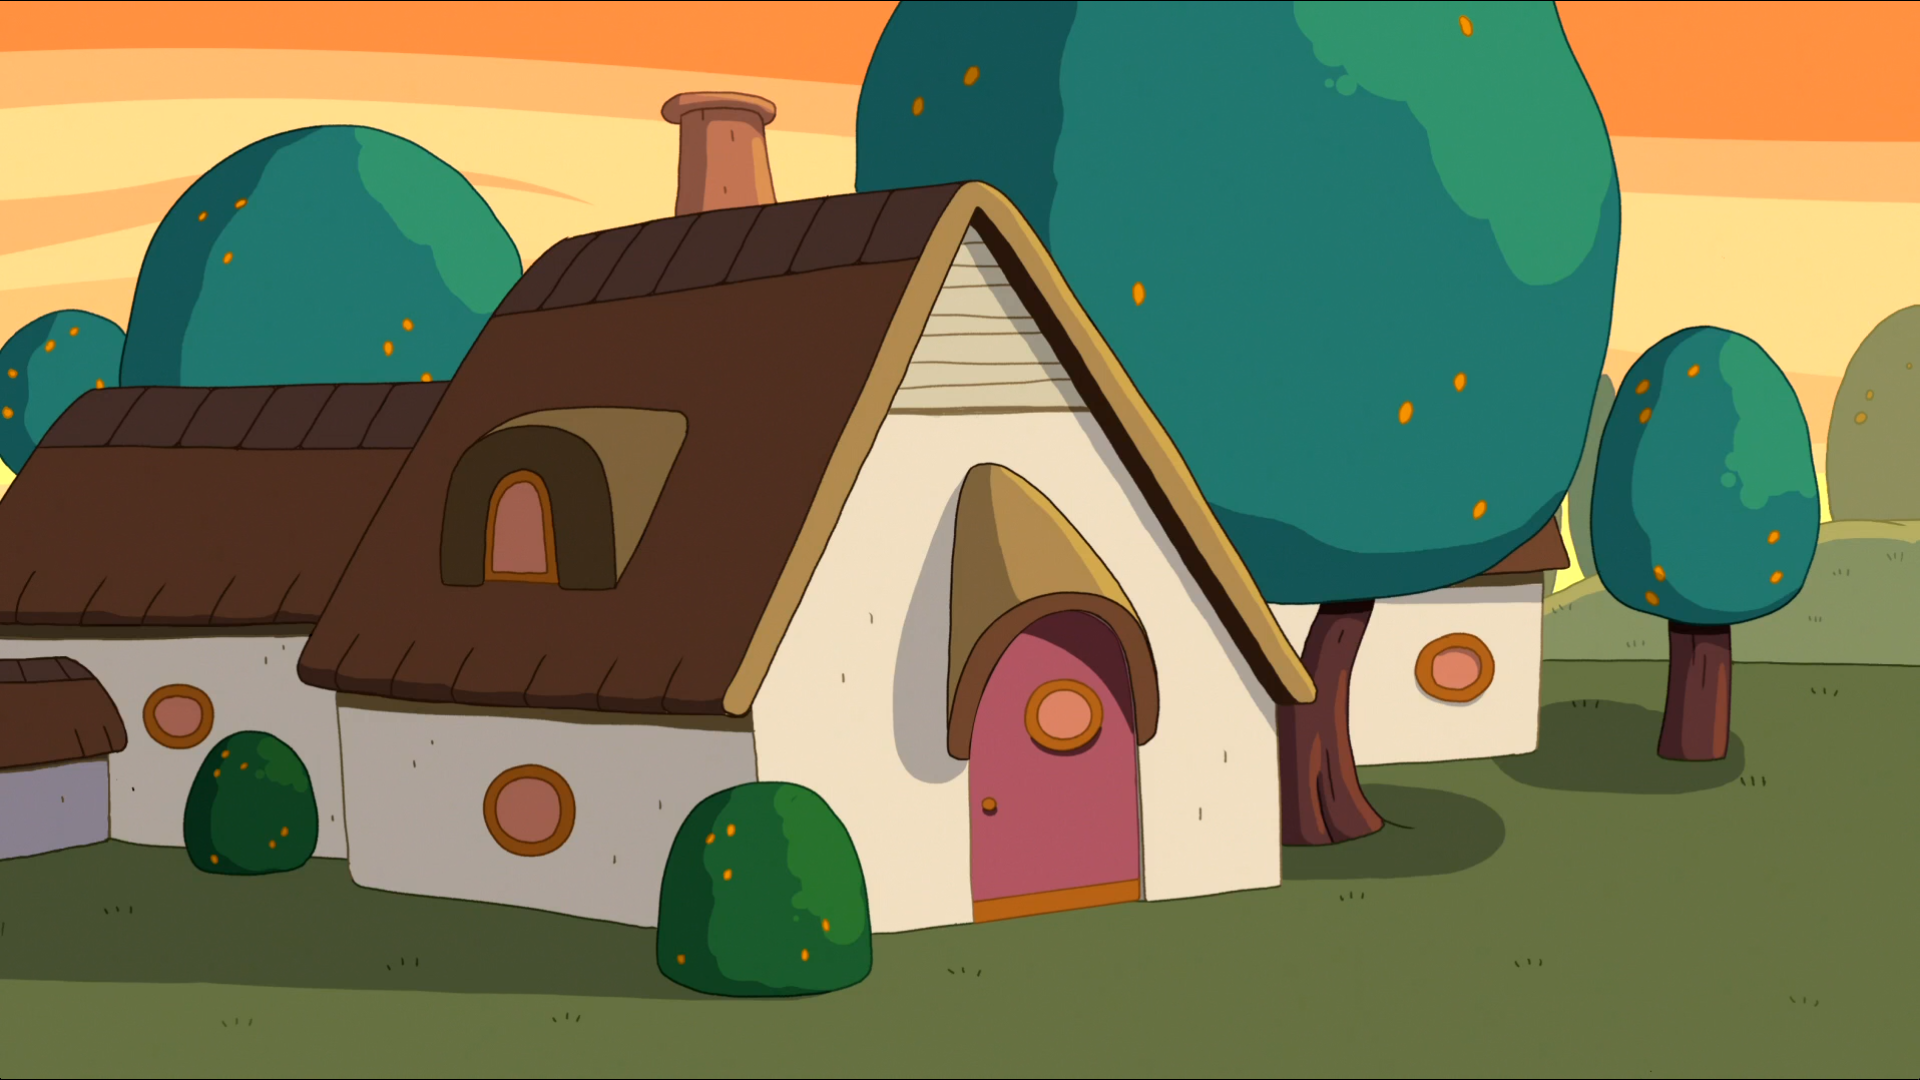 Candyland Clipart together with Crystal also 4005 2051 additionally File S07e06 village houses furthermore Adventure Time Bubbline Subtext Stops Cutting. on ice cartoon character